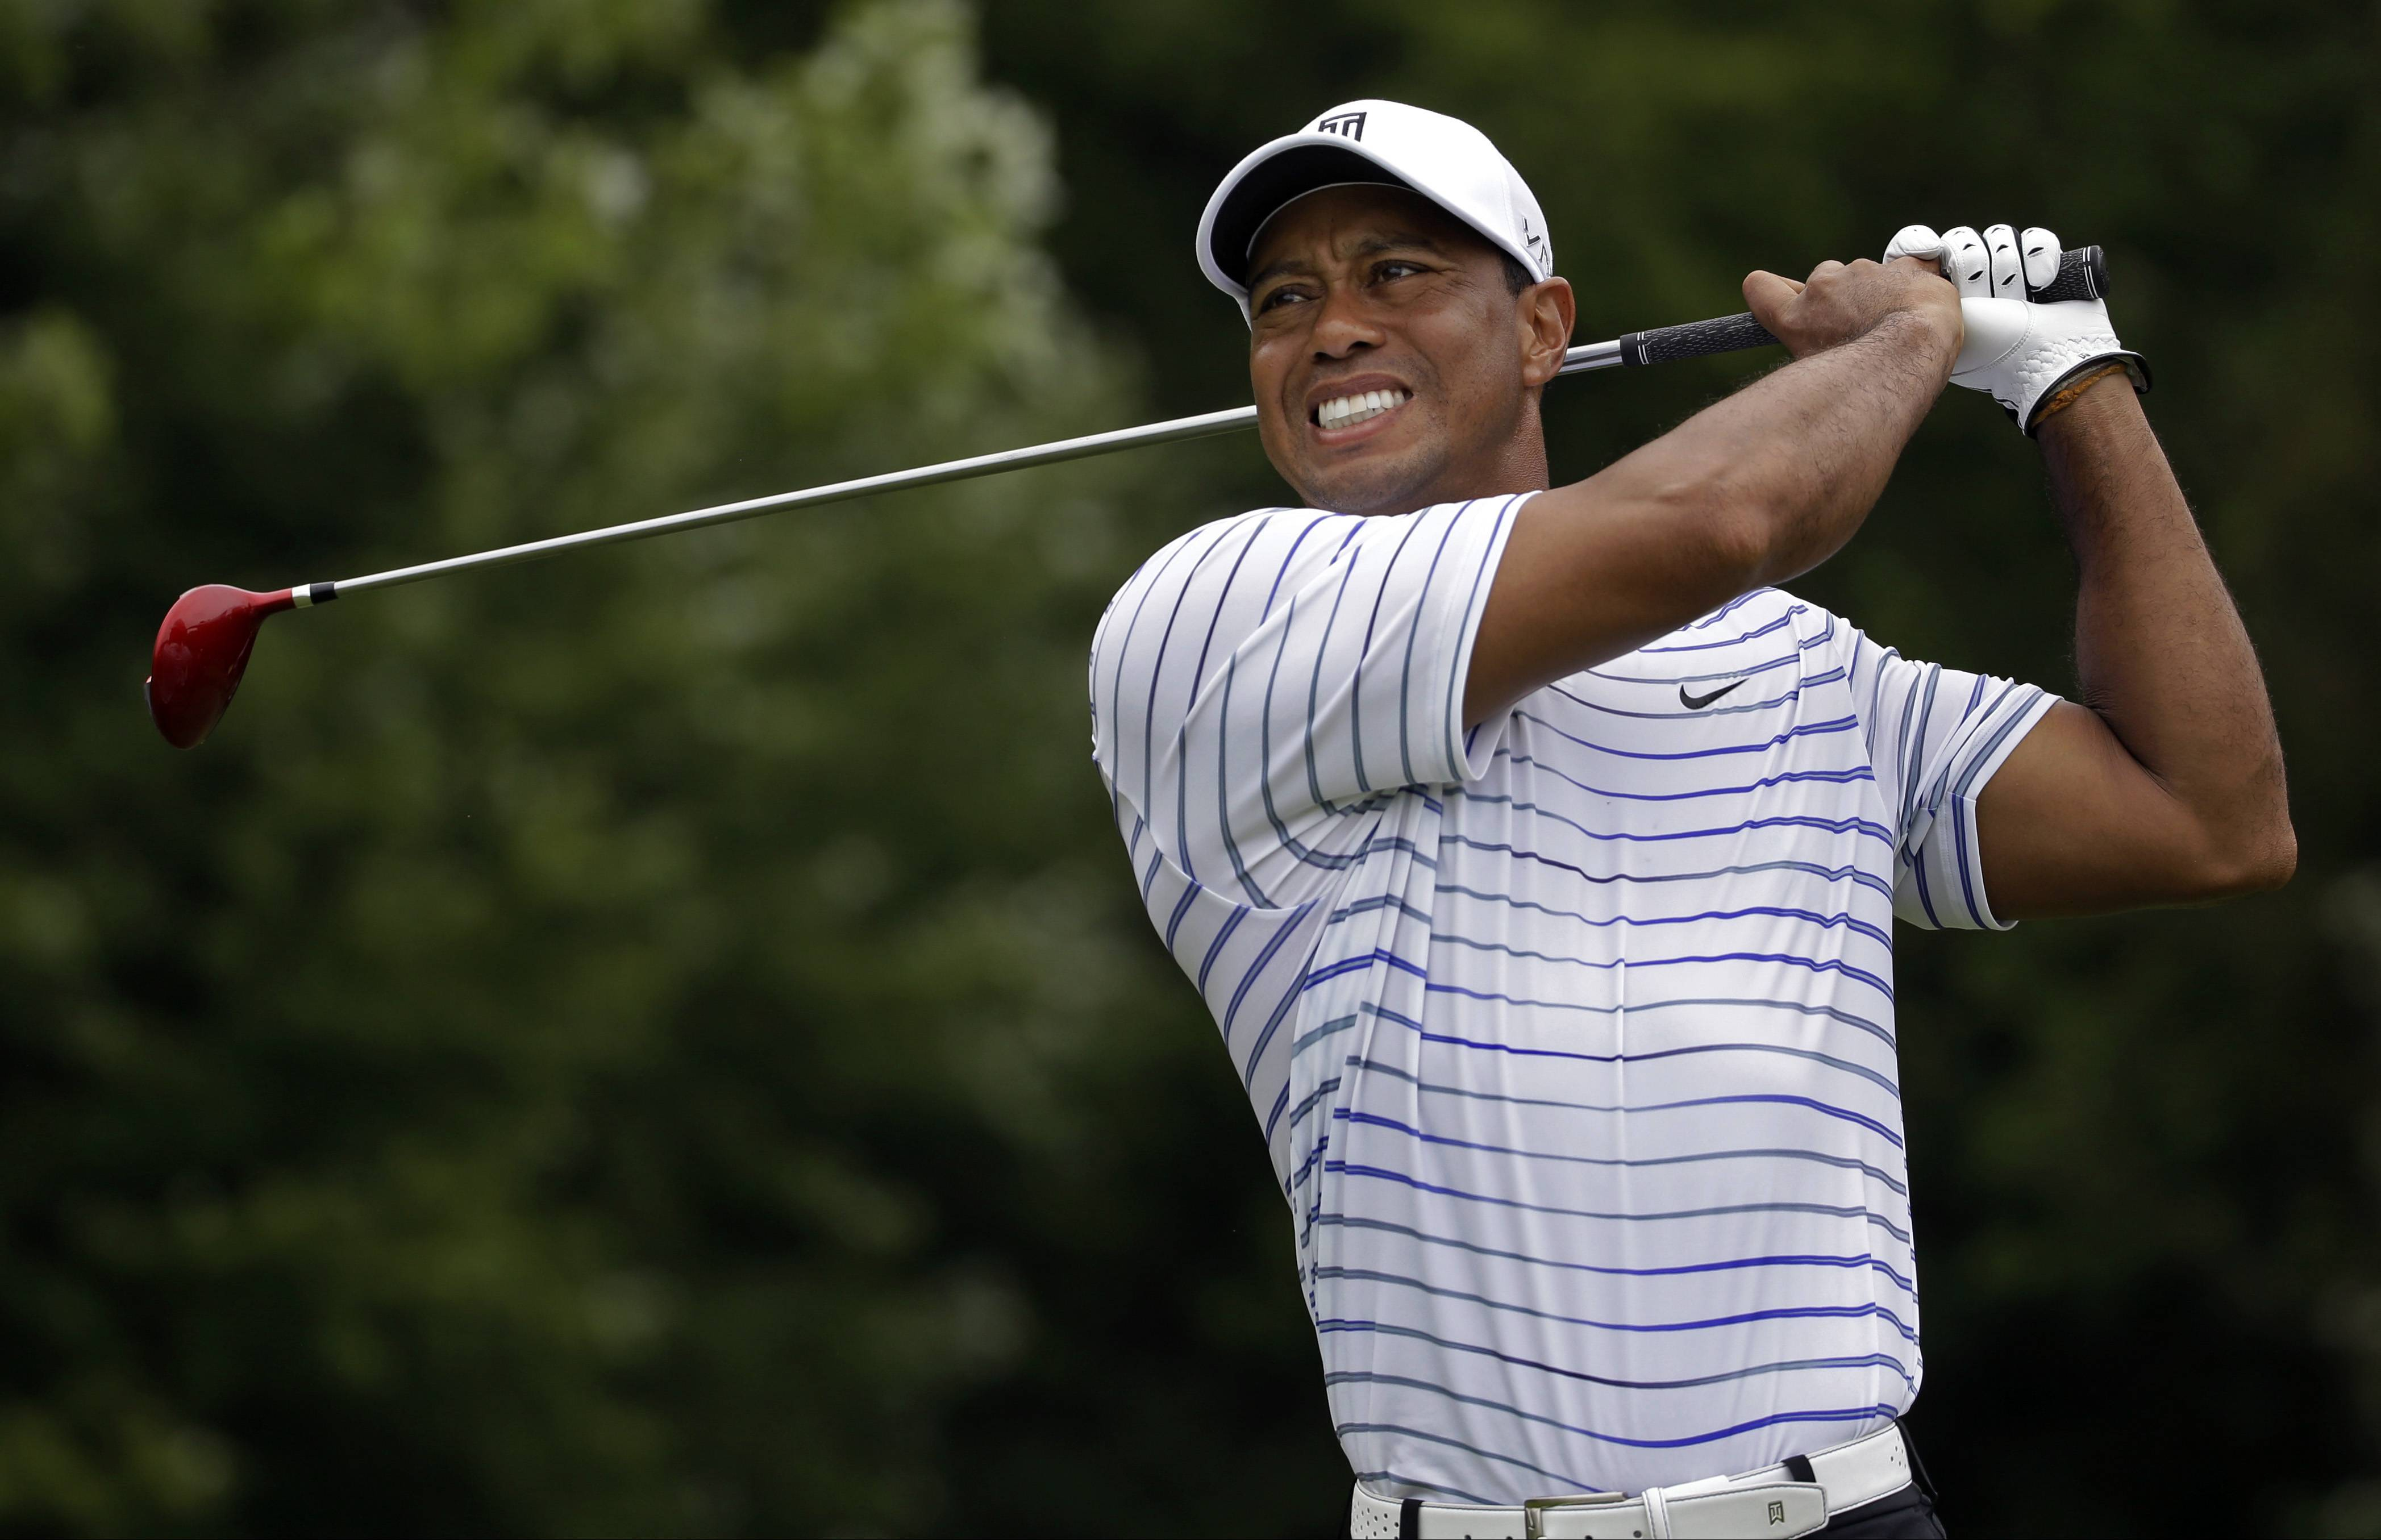 Tiger Woods removed himself from consideration for the Ryder Cup team Wednesday evening with a clear message that he is not healthy enough to play.